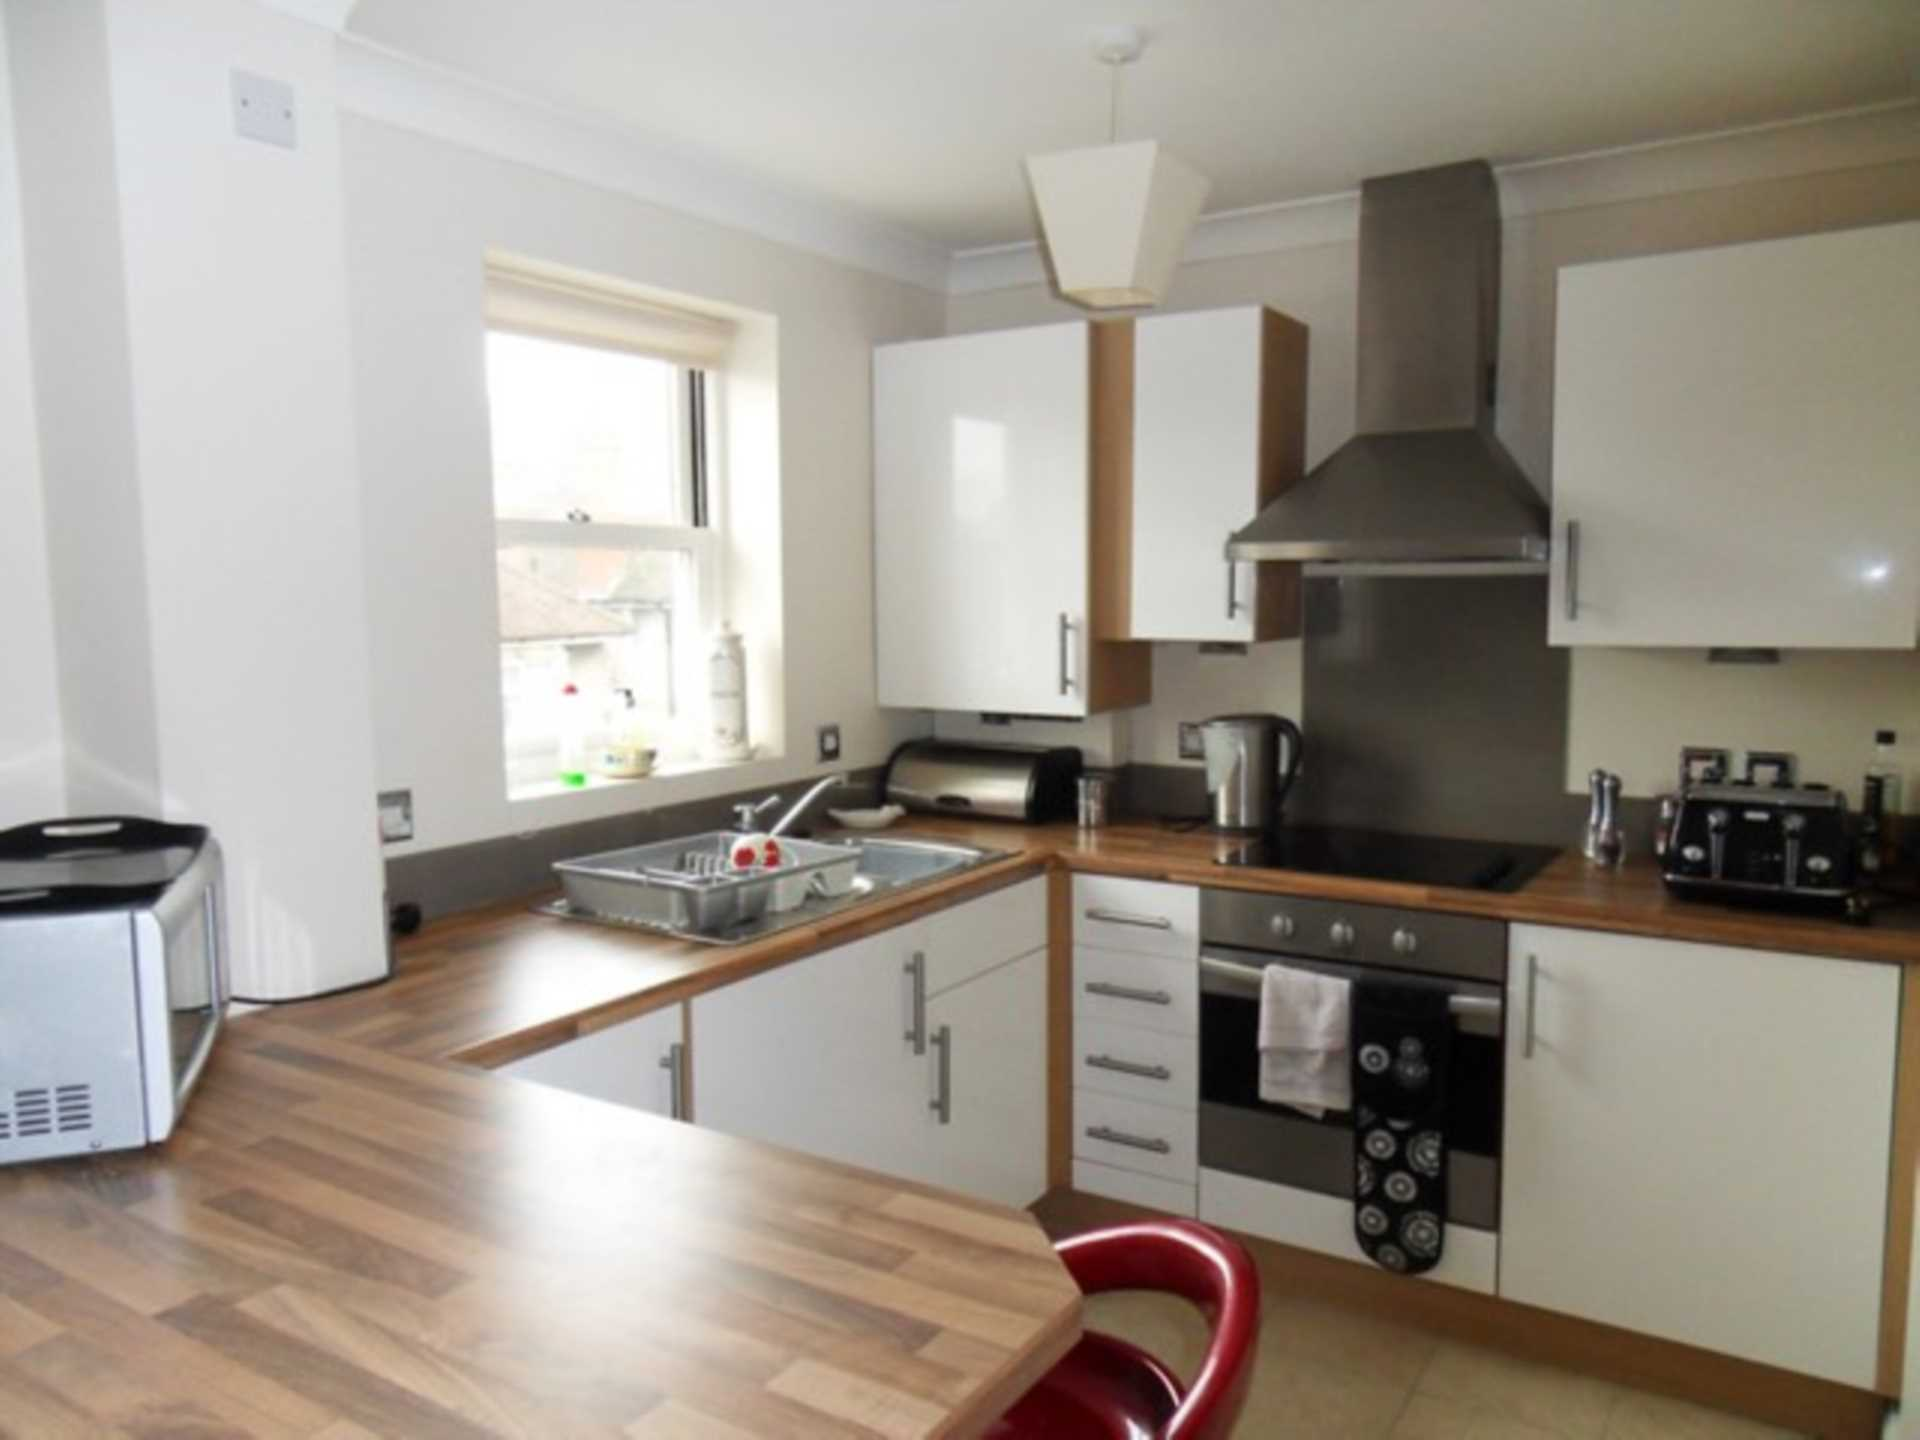 2 bed flat to rent in The Orkneys, Blandford Forum, Blandford Forum 2